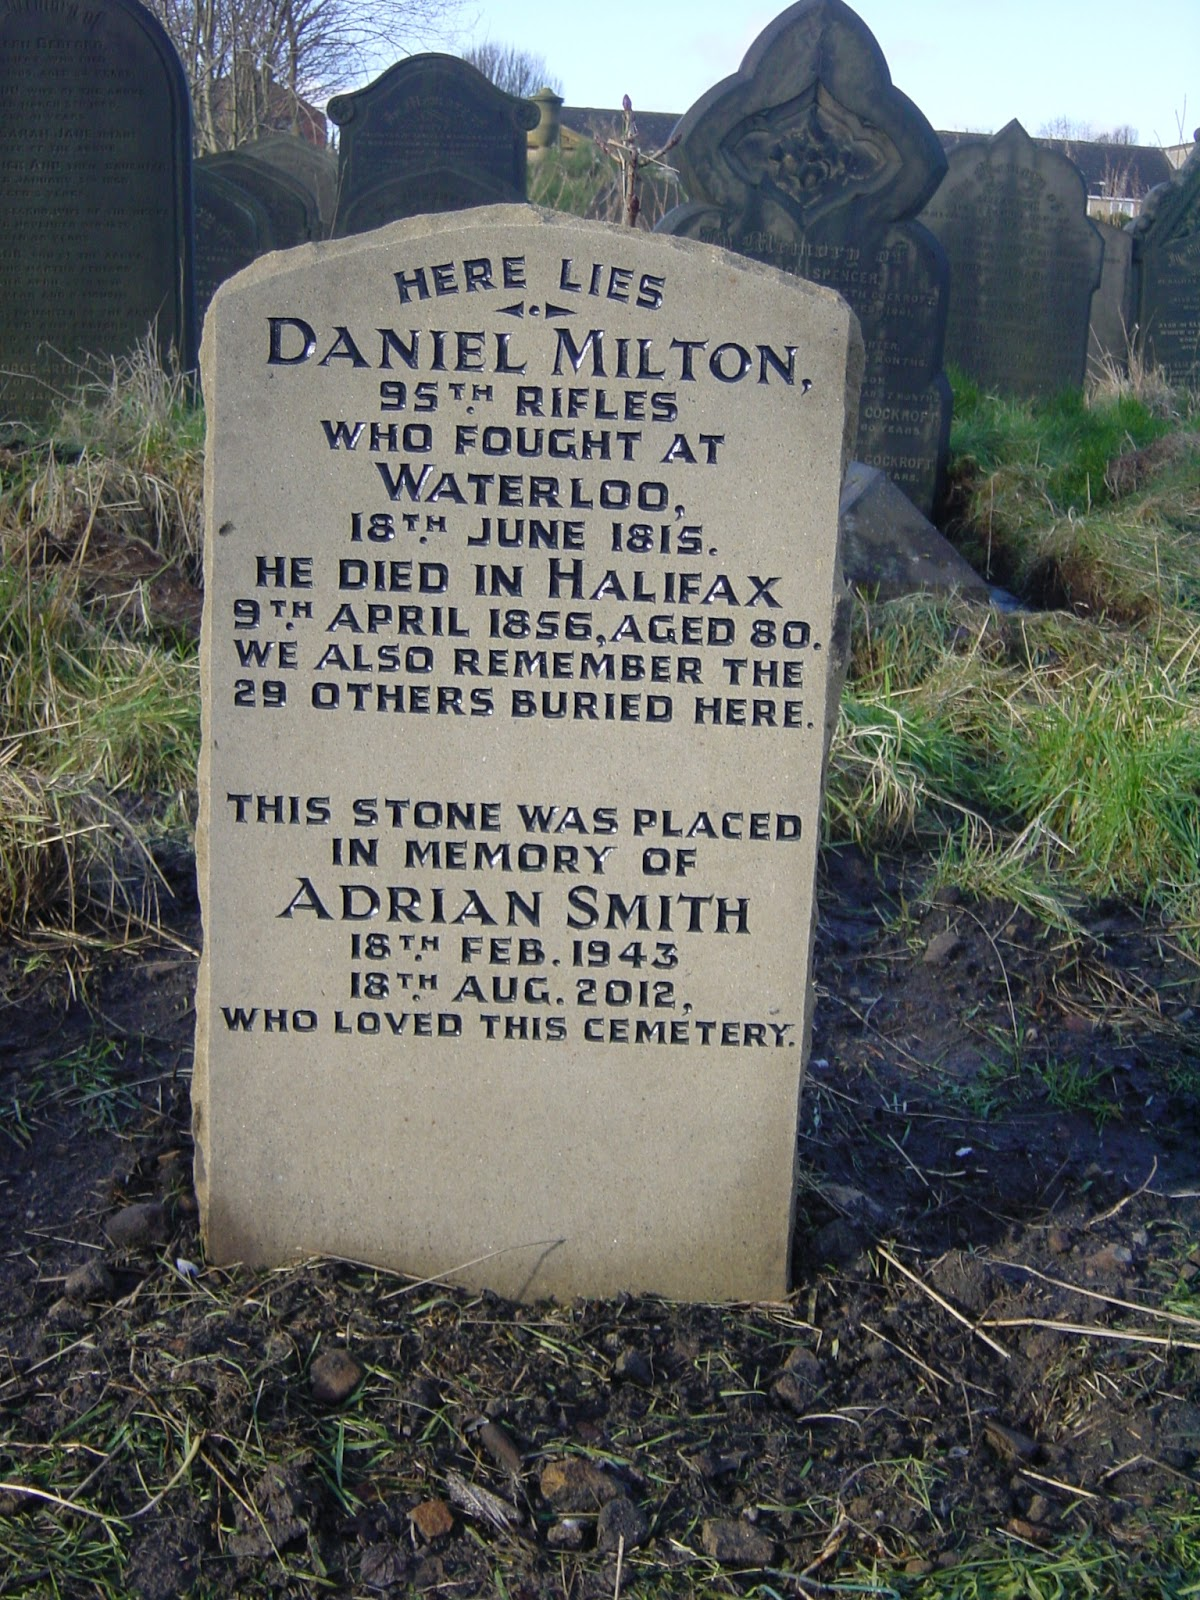 Lister Lane Cemetery (Halifax, United Kingdom)